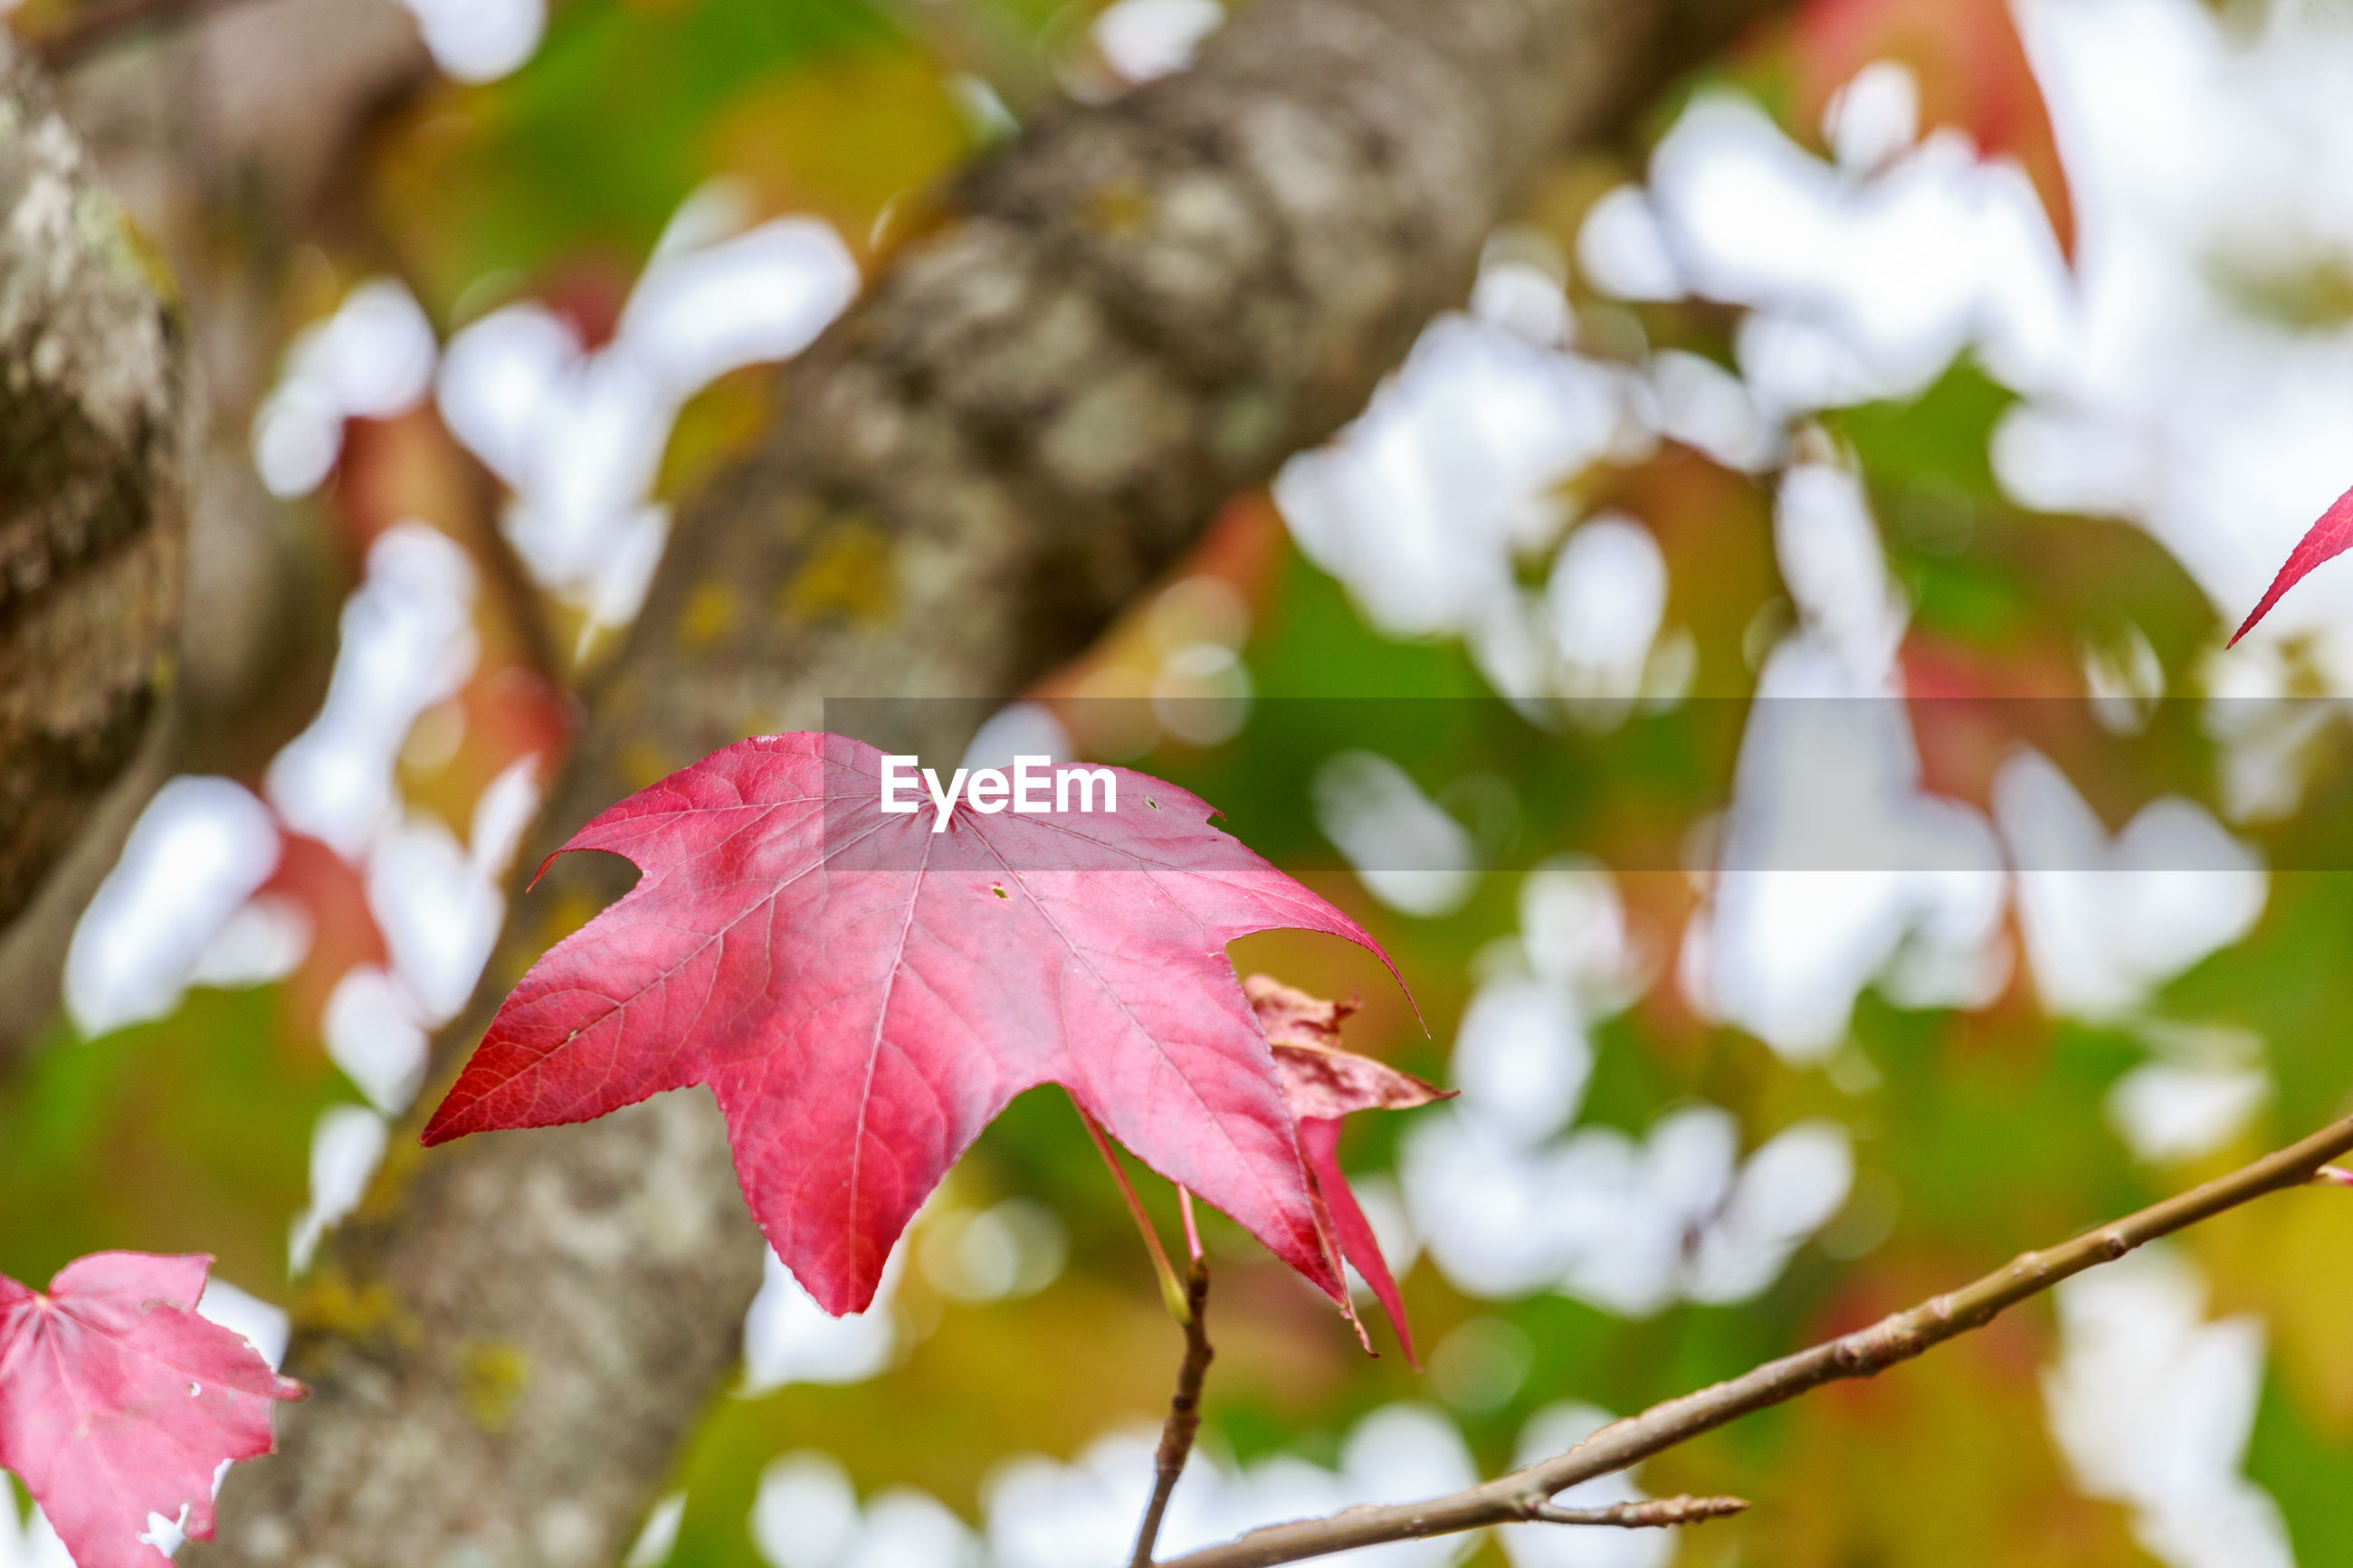 Close-up of pink maple leaves on plant during autumn